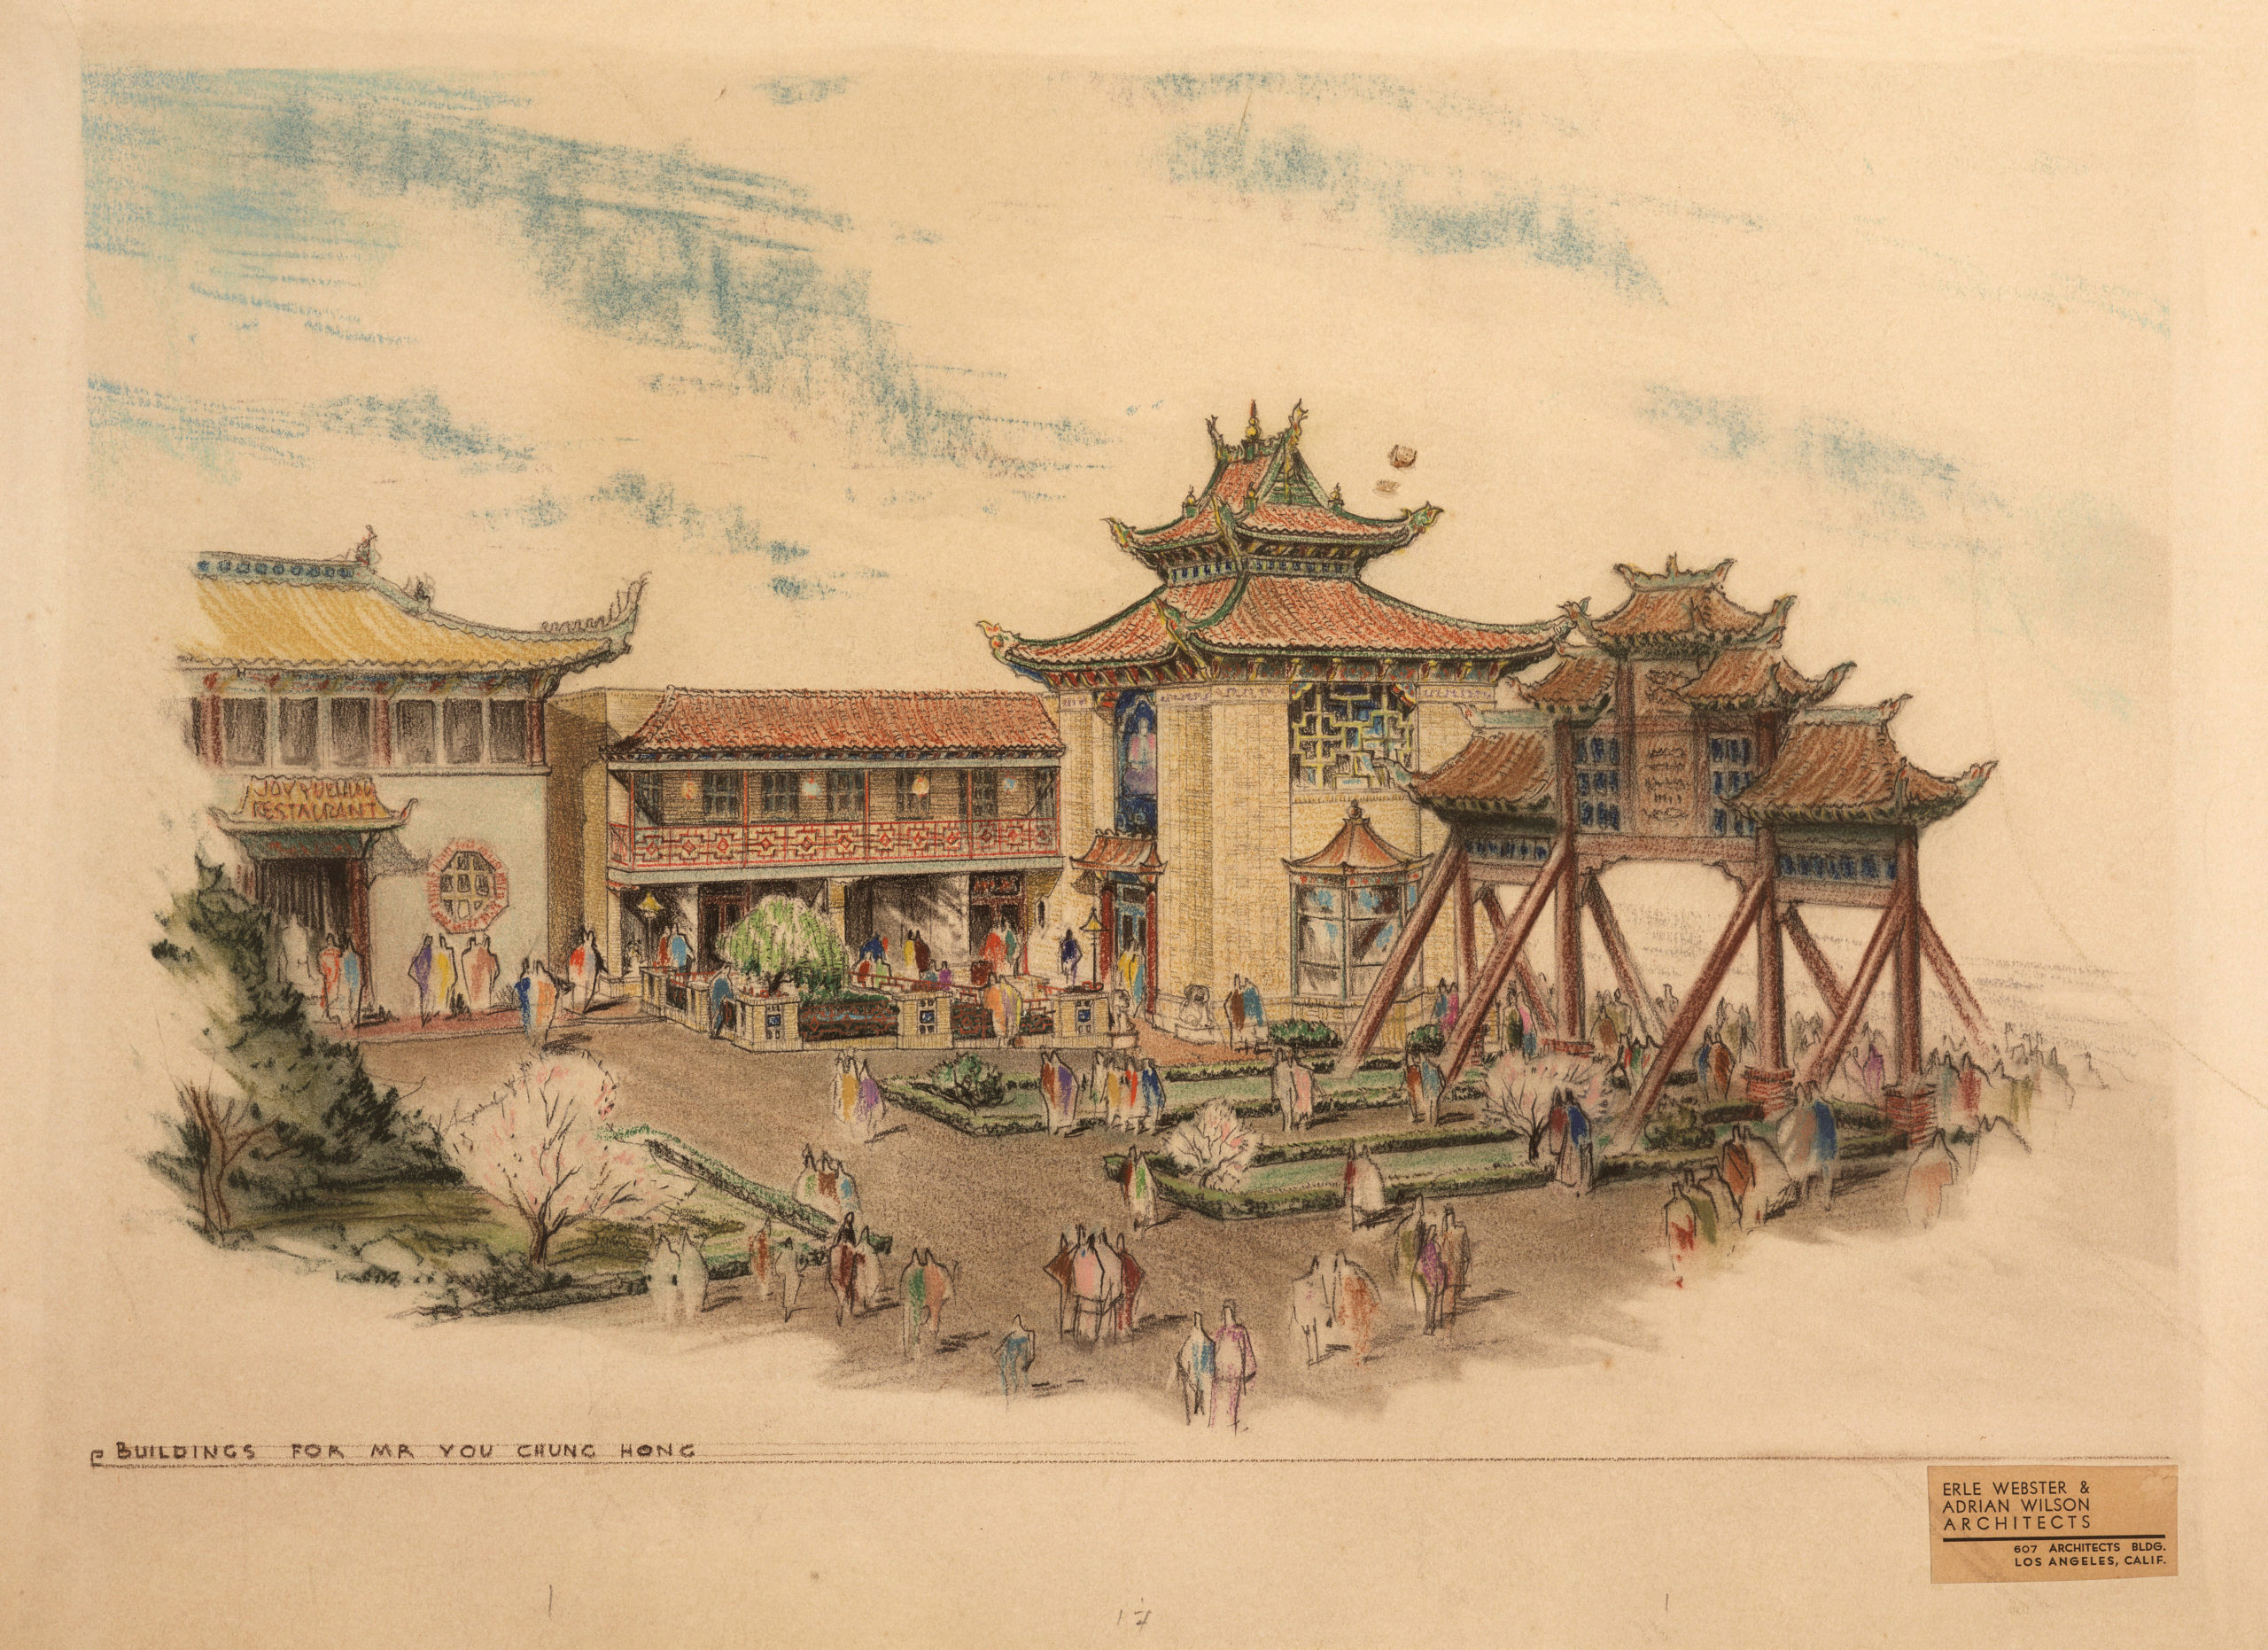 Building rendering for You Chung Hong by Erle Webster and Adrian Wilson, architects (c. 1936)